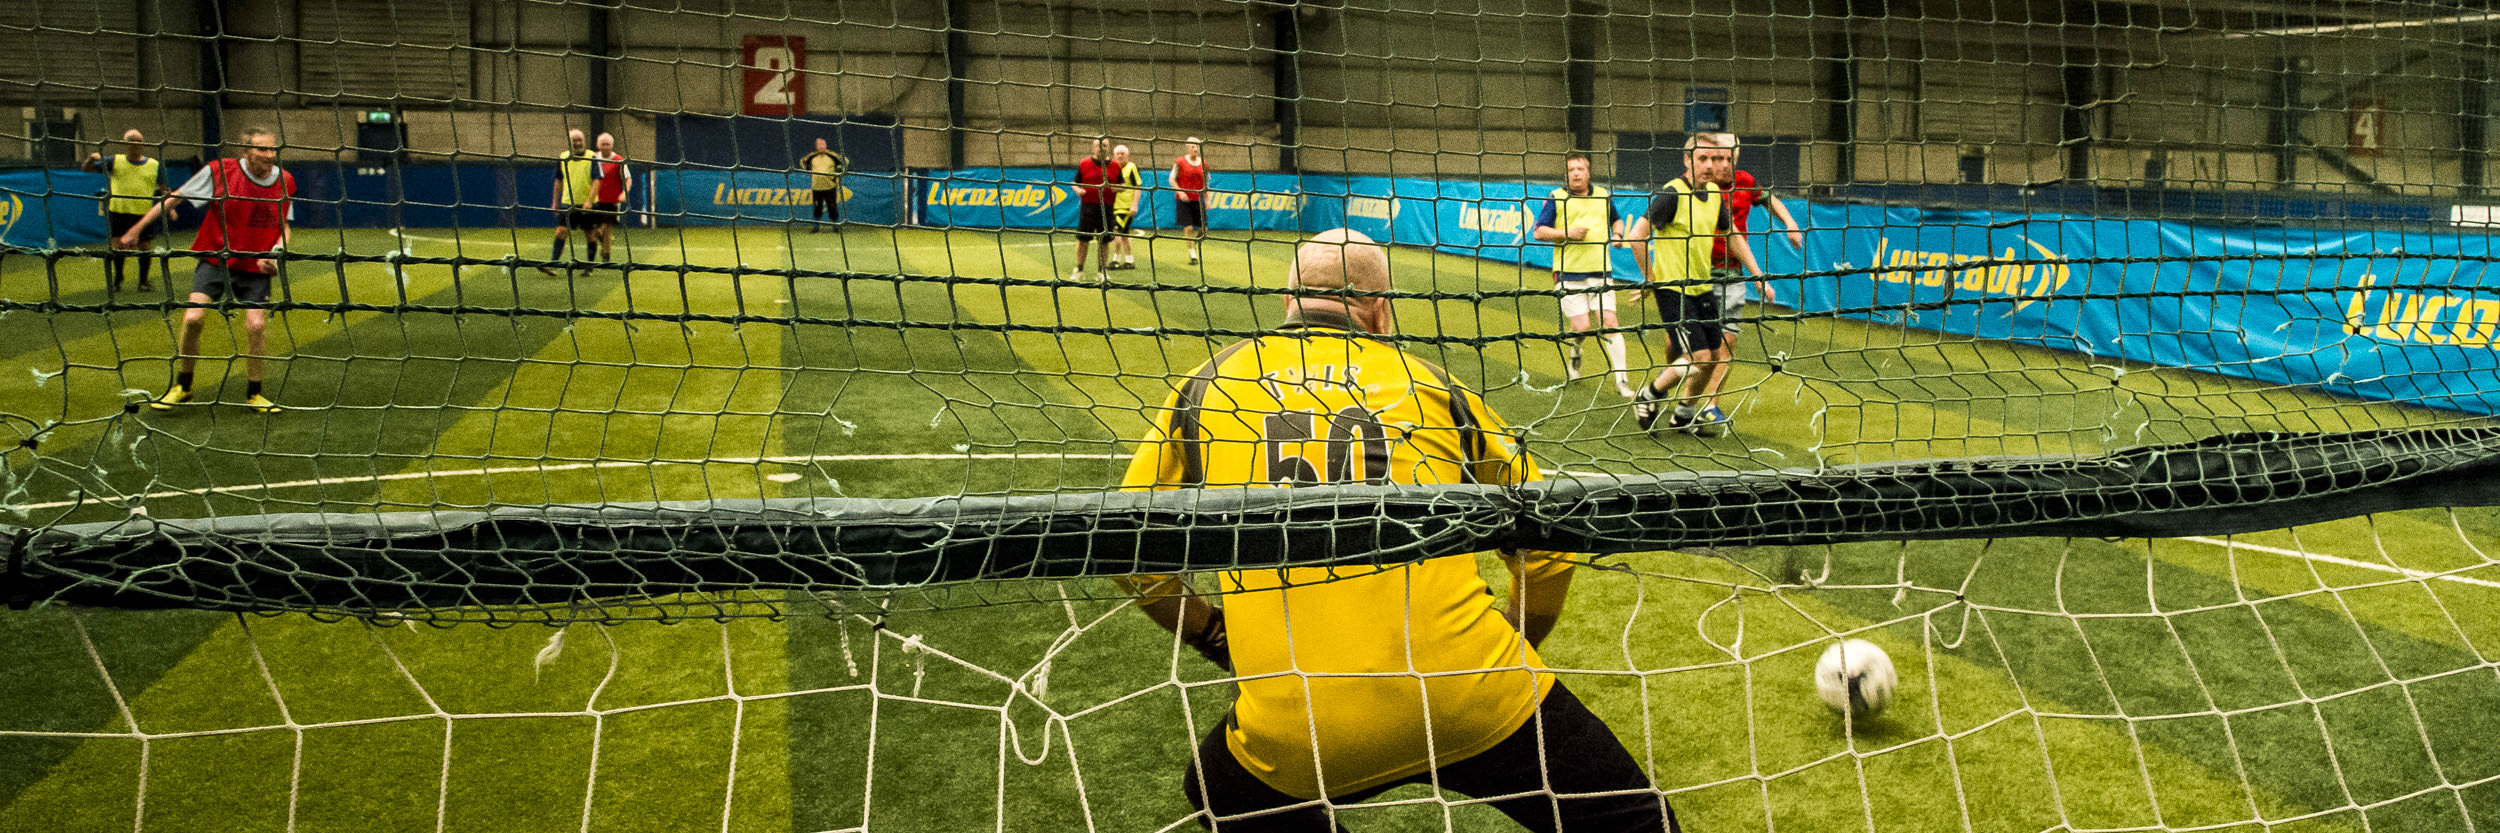 walking football in England